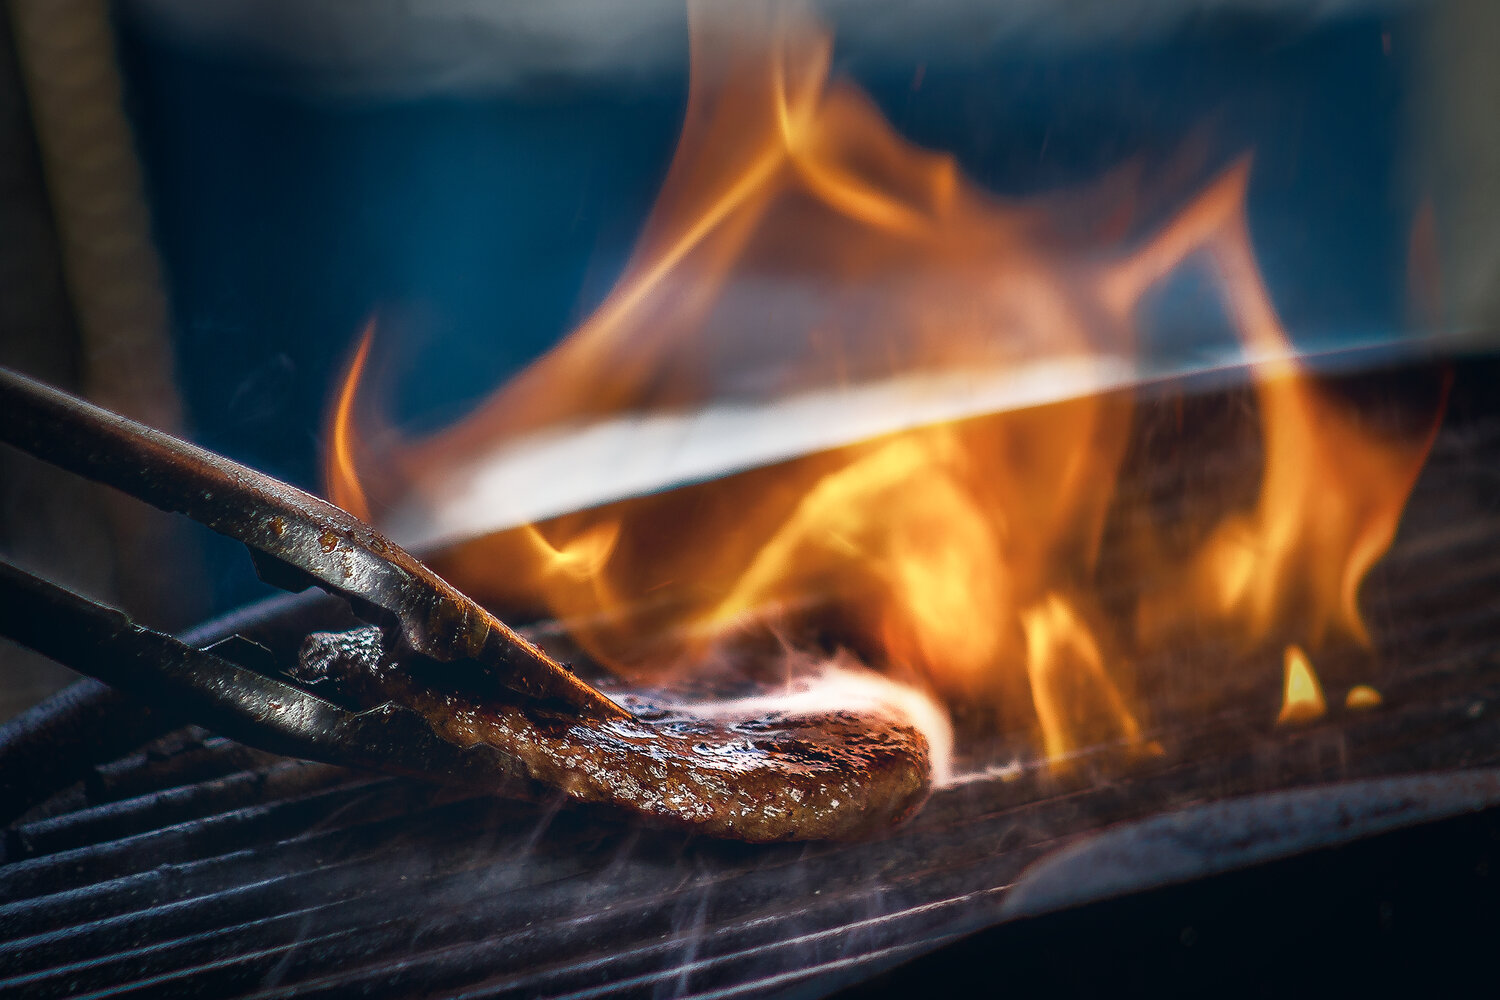 Grilling Steak with Fire